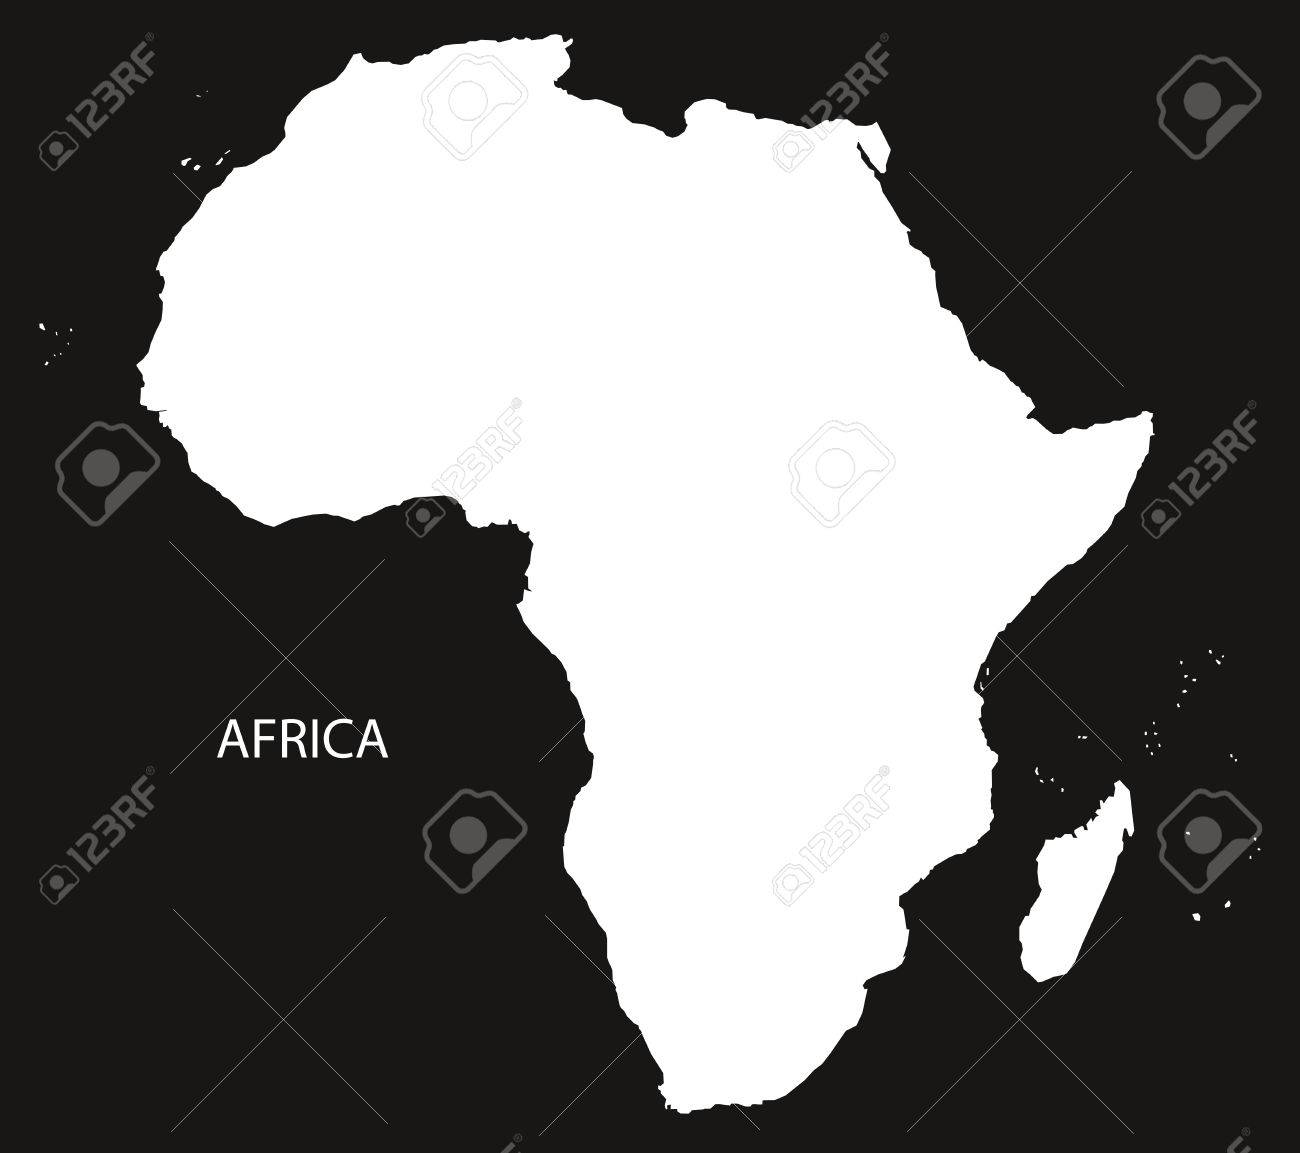 Africa Map Black And White Illustration Royalty Free Cliparts